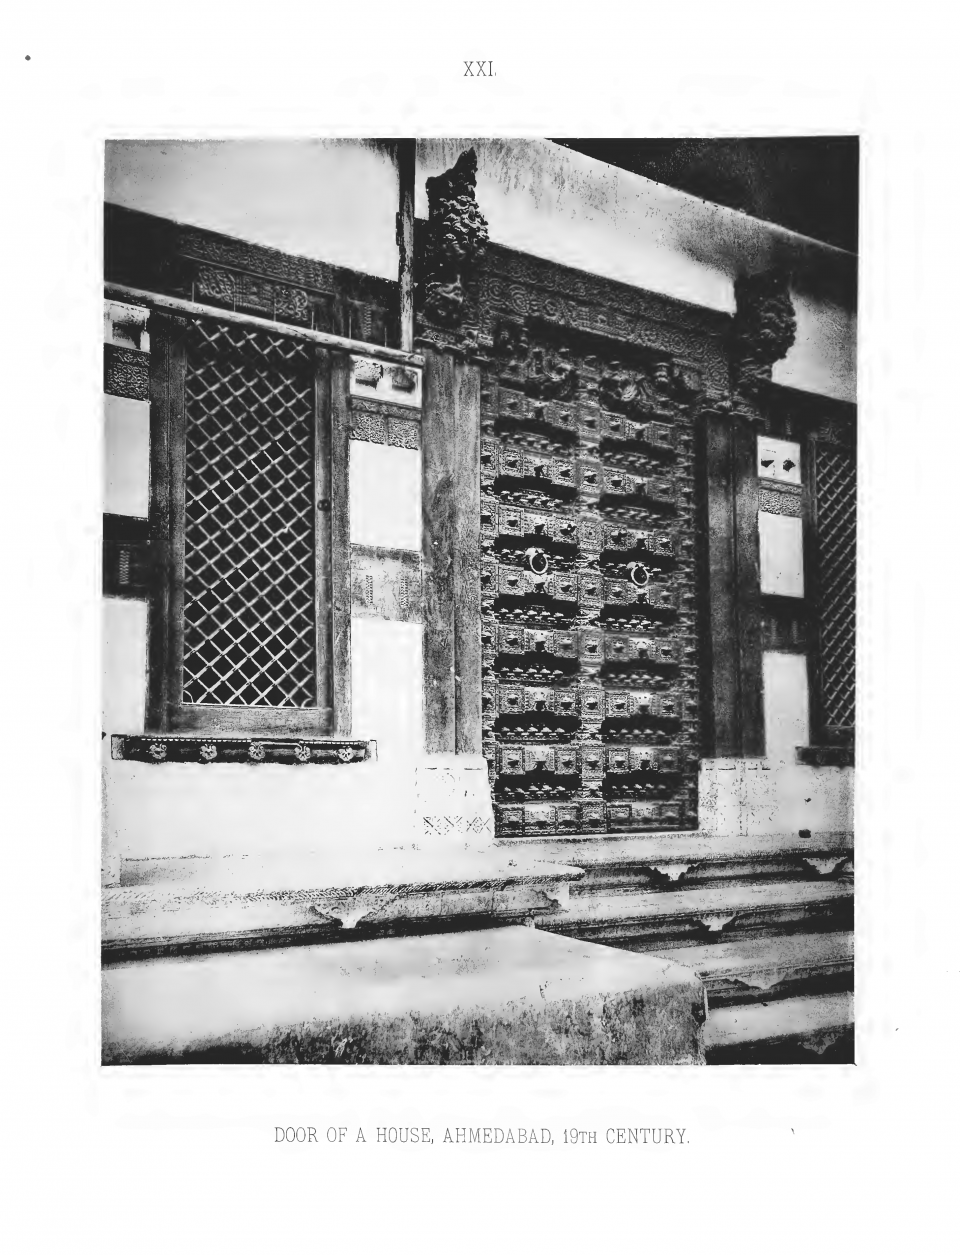 PLATE XXI. DOOR OF A HOUSE AT AHMEDABAD, 19TH CENTURY.